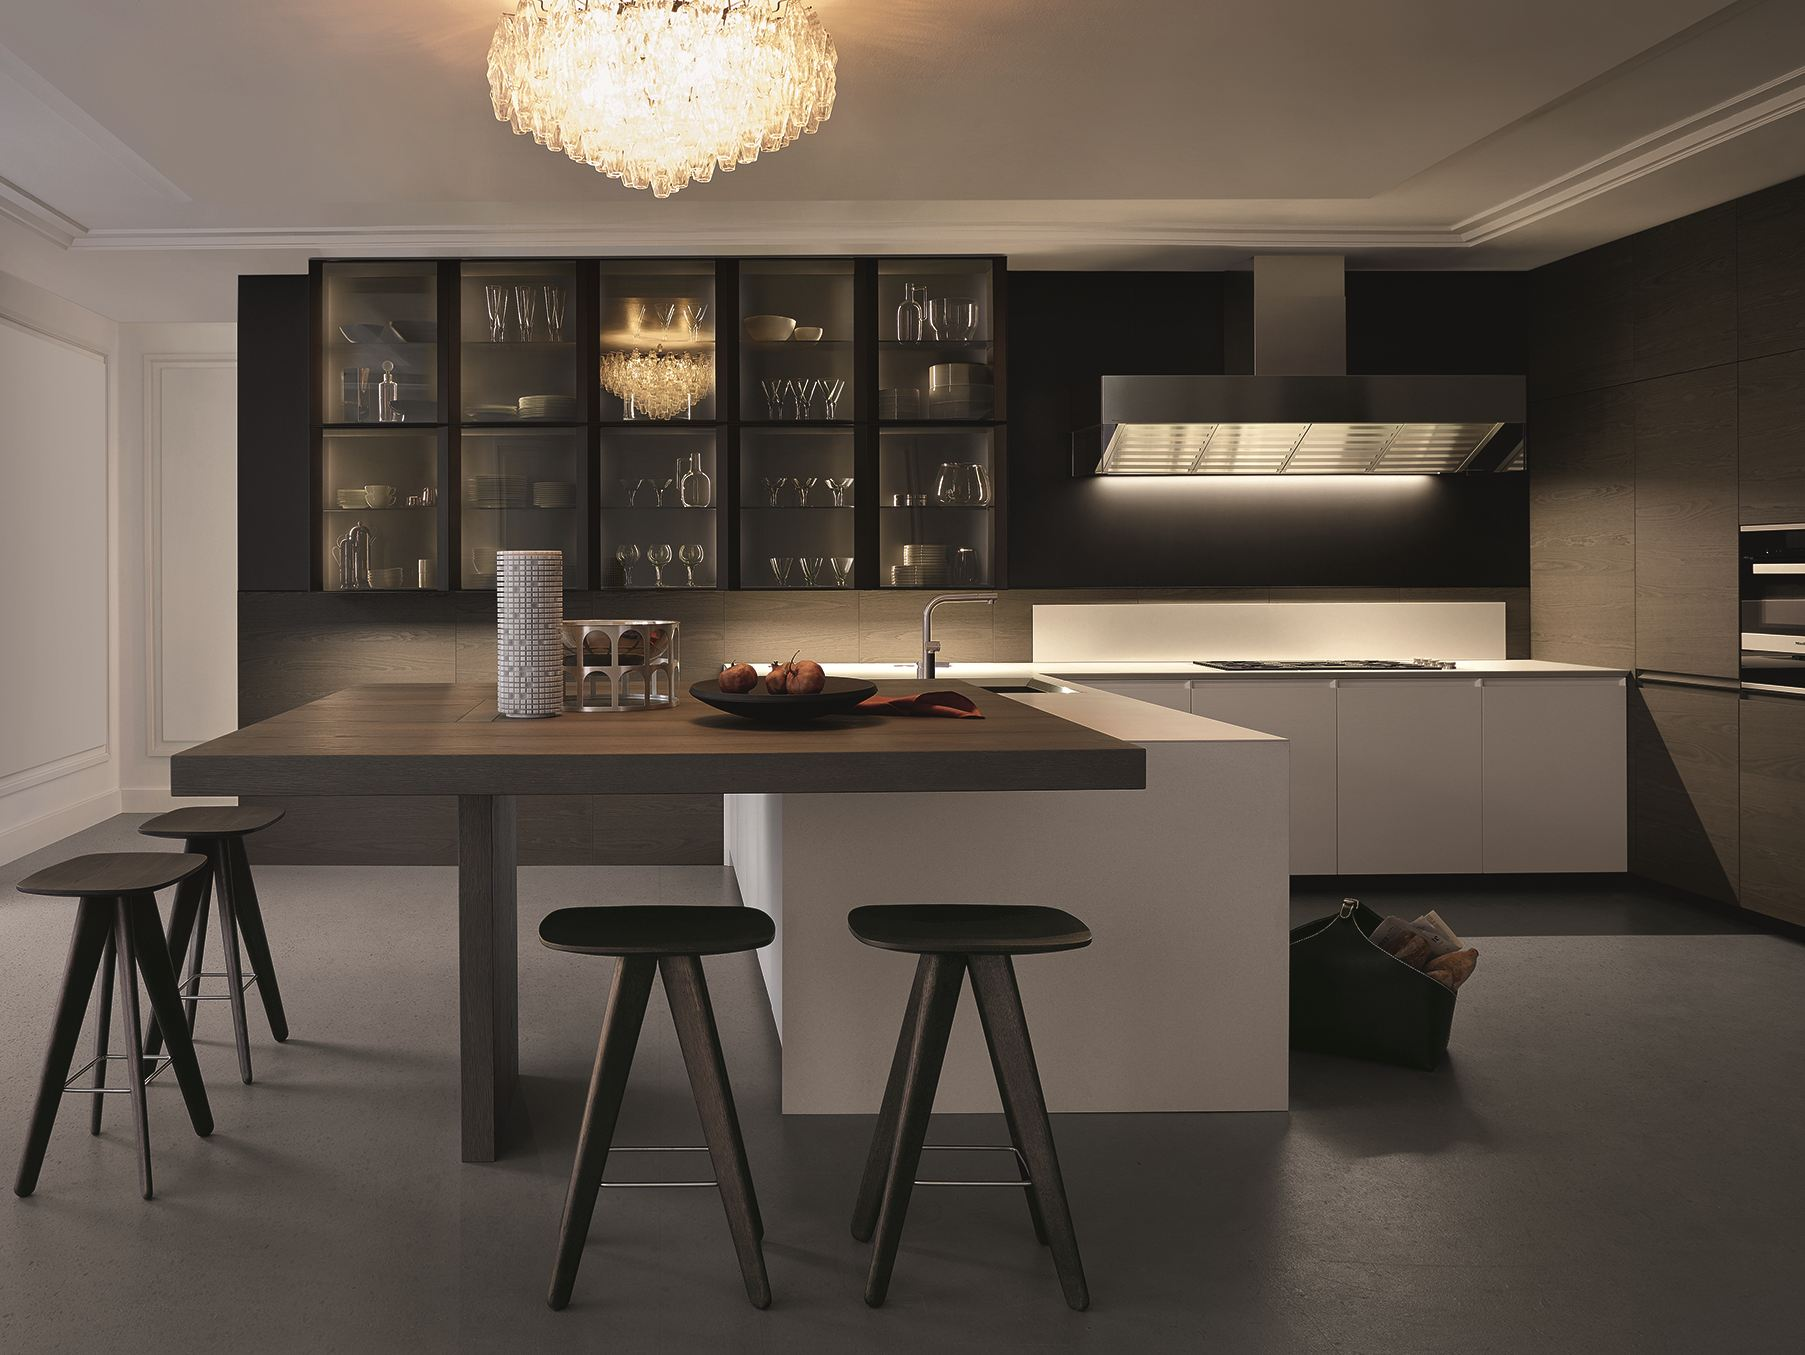 varenna kitchen cabinets cabinets matttroy. Black Bedroom Furniture Sets. Home Design Ideas